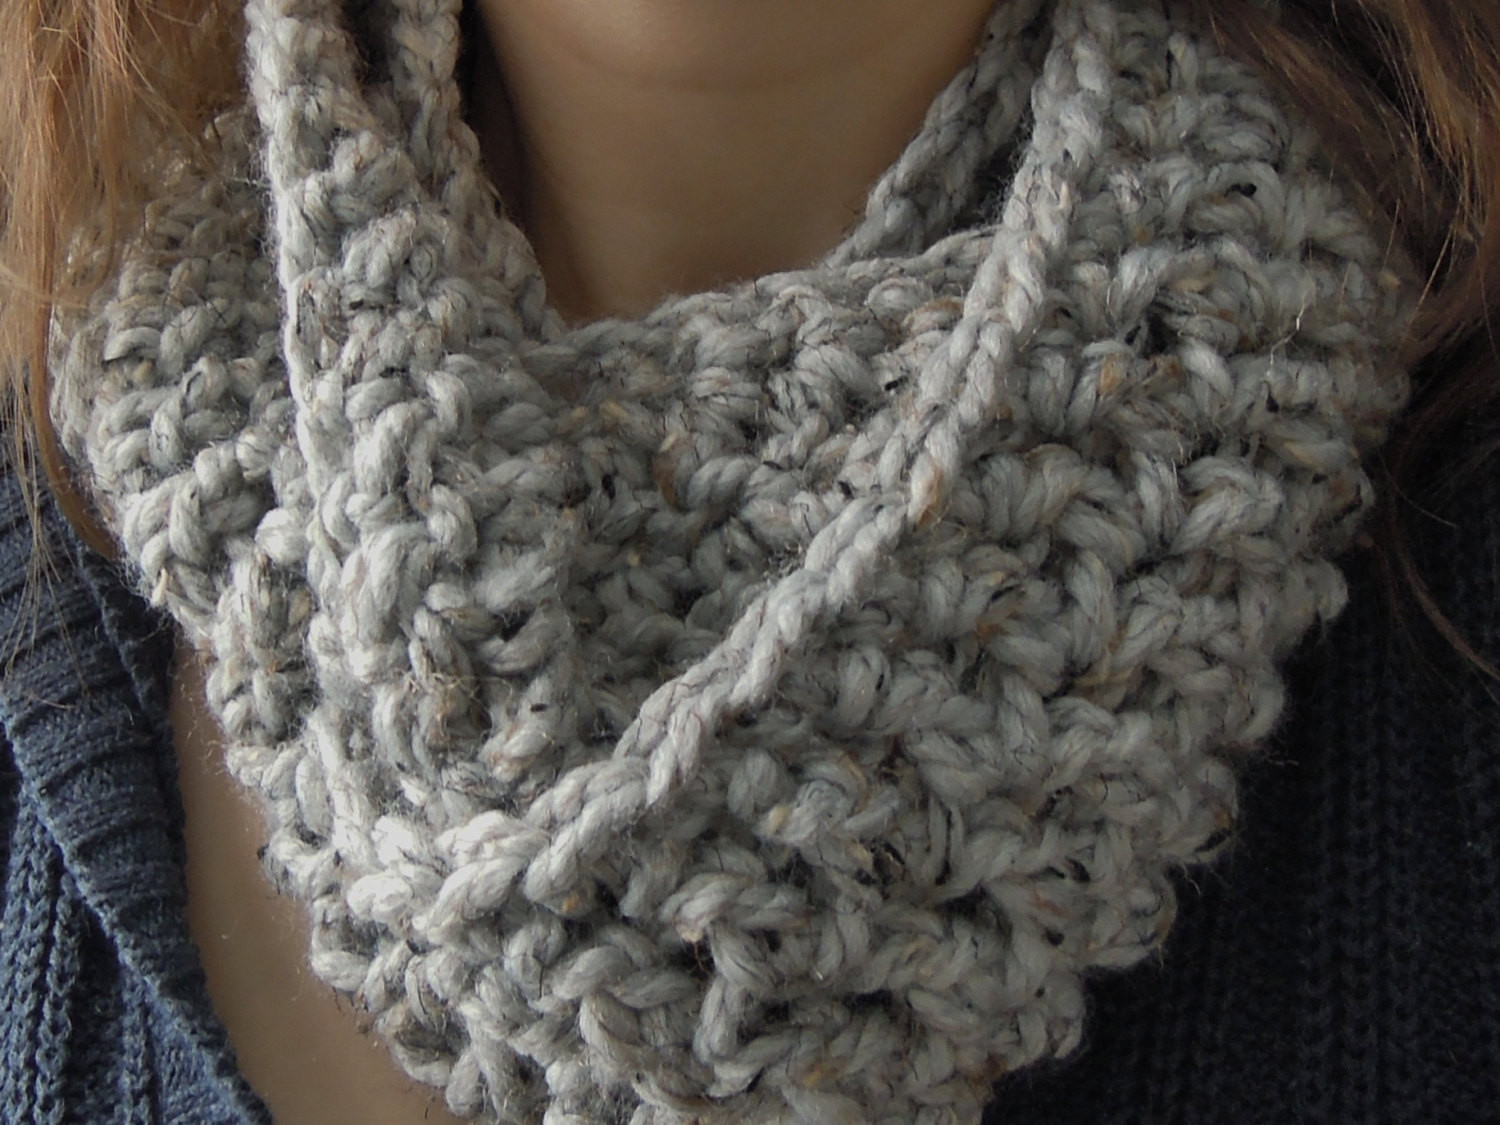 Chunky Yarn Crochet Patterns Best Of Crochet Infinity Scarf Pattern with Chunky Yarn Of Amazing 46 Photos Chunky Yarn Crochet Patterns